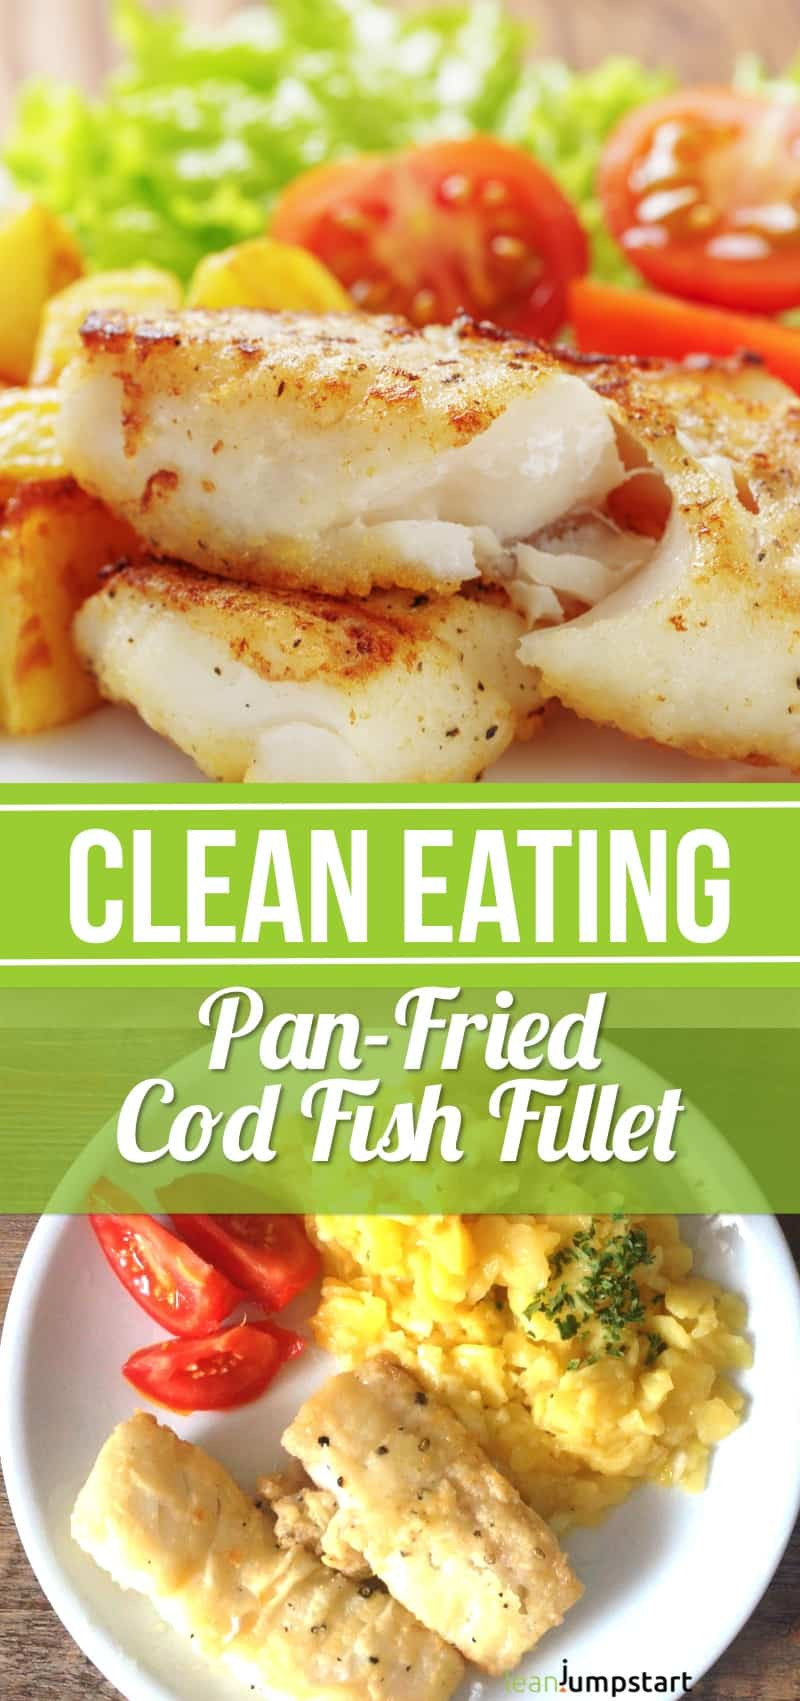 Healthy White Fish Recipes  Cod Fish Recipes How to cook pan fried cod the healthy way